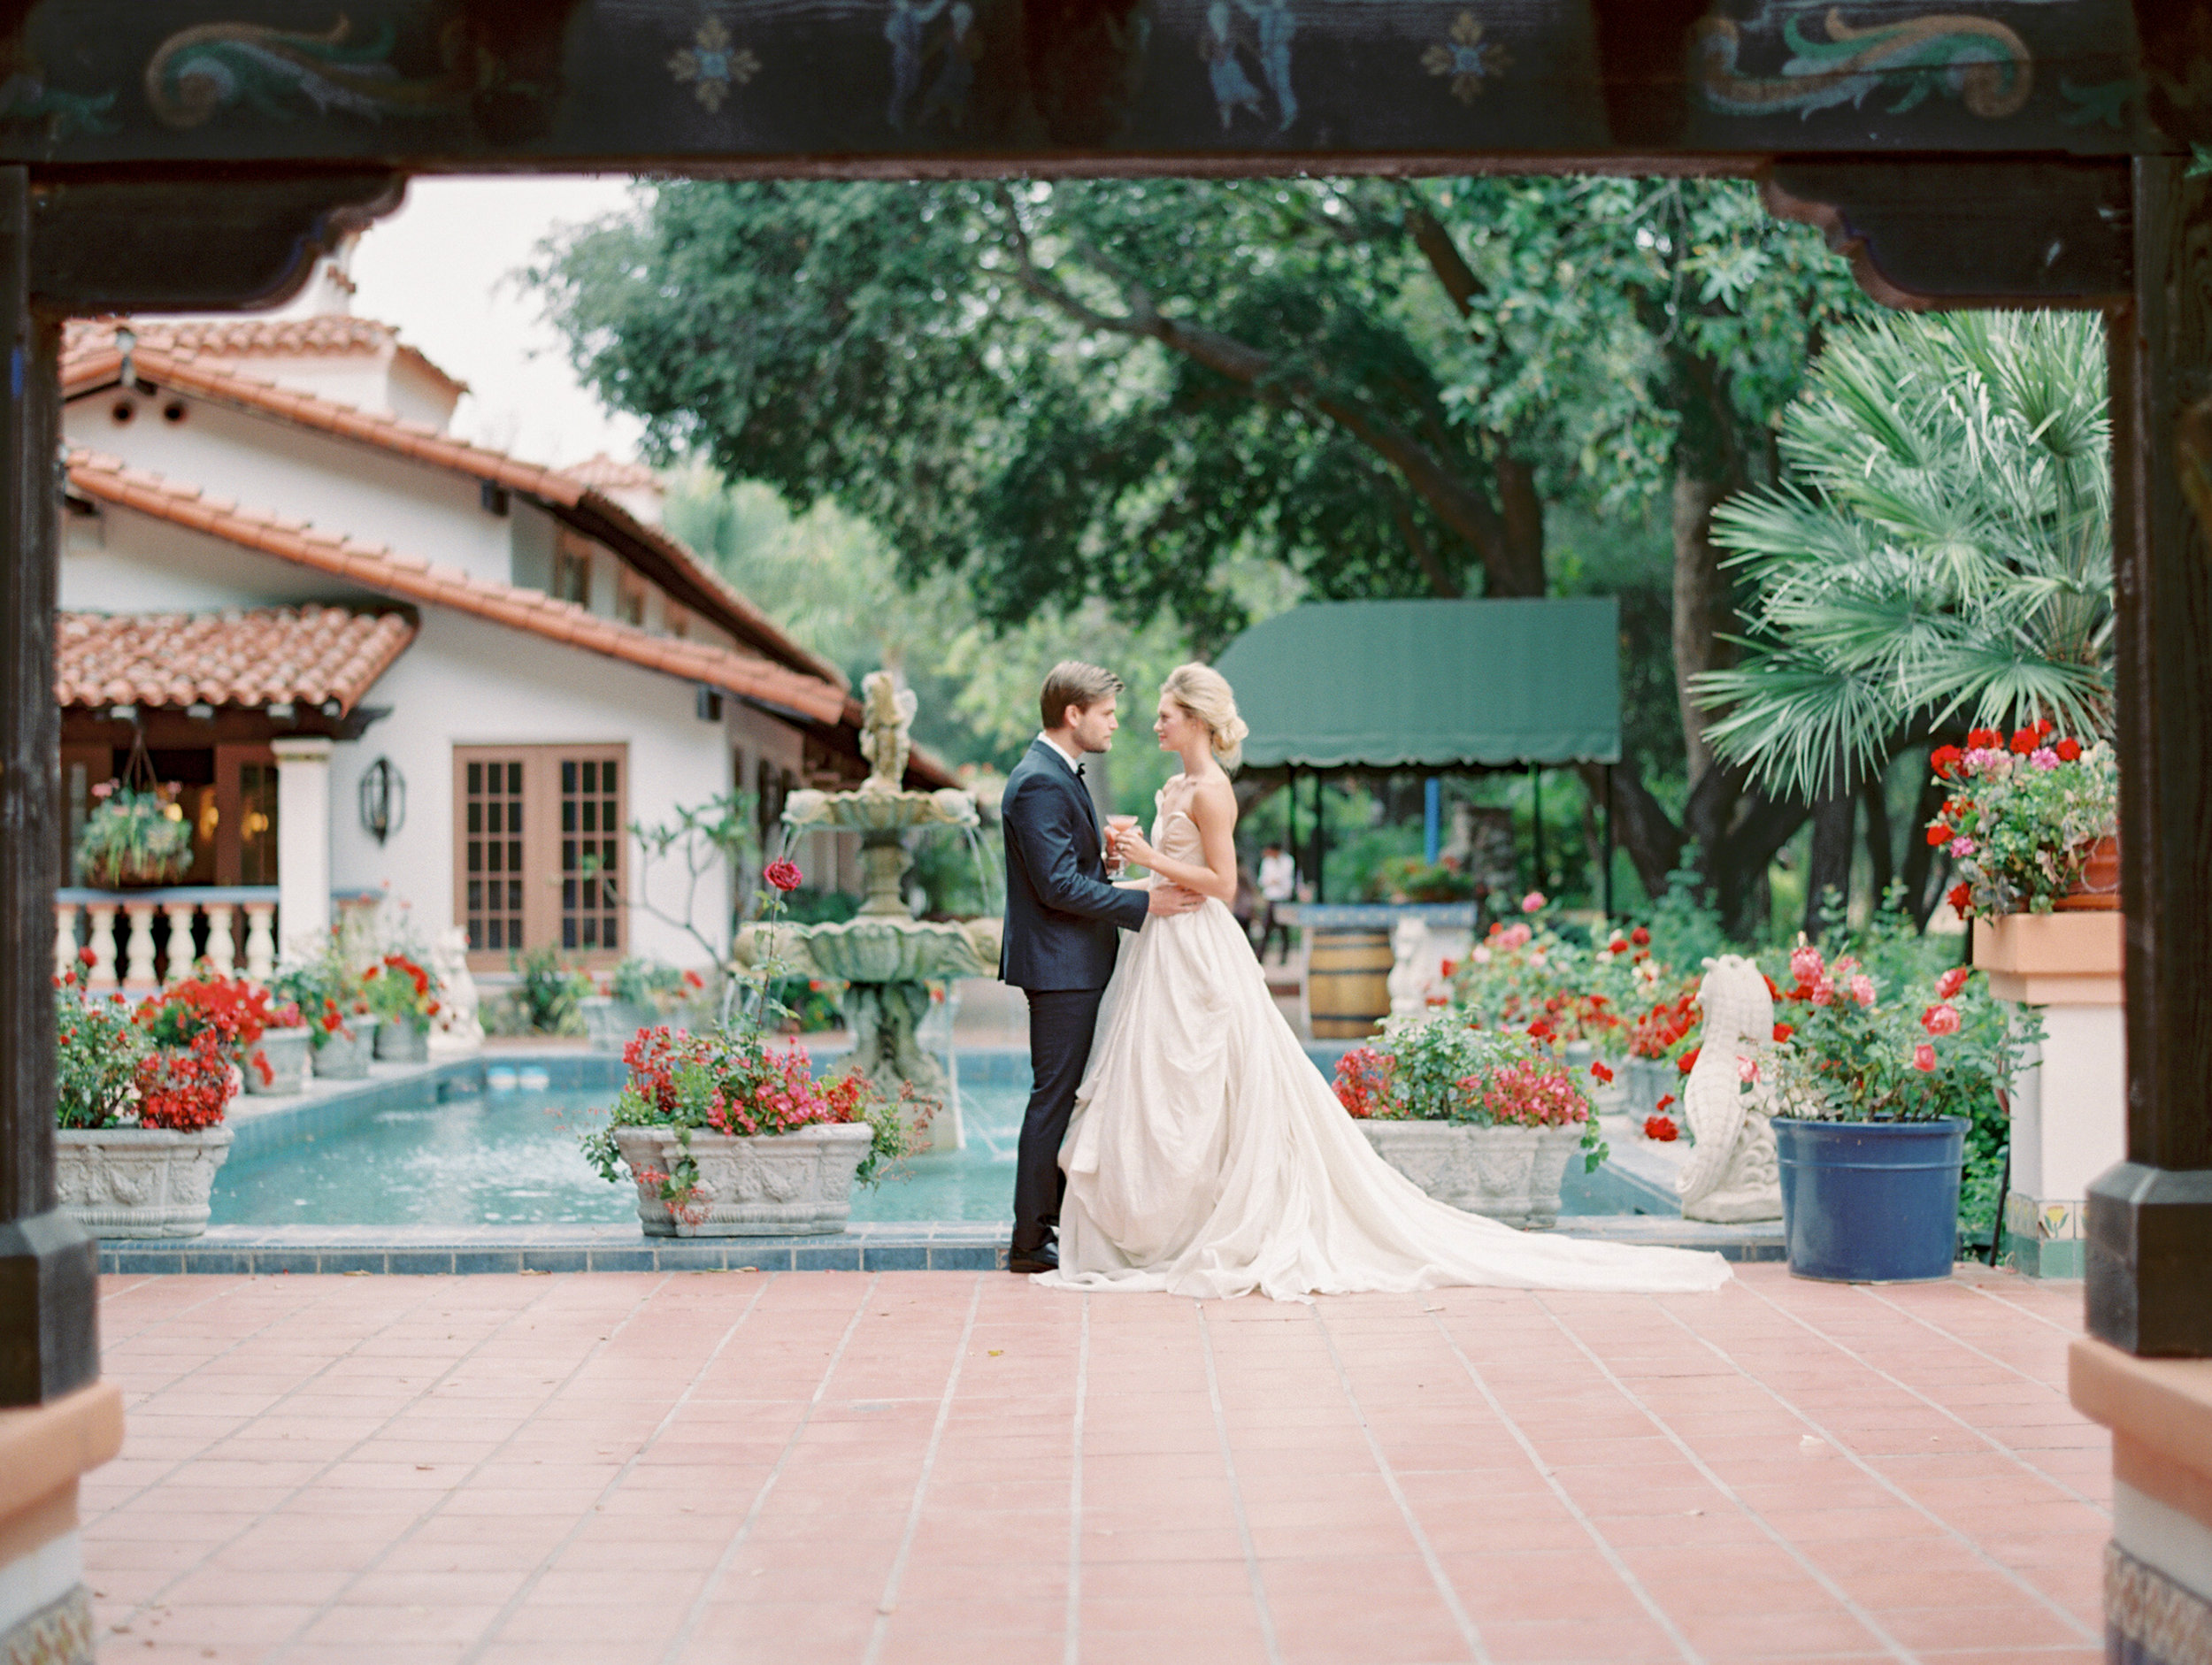 Jon Cu168- Rancho-Las-Lomas-california-film-wedding-bride-groom-spanish-peach.jpg